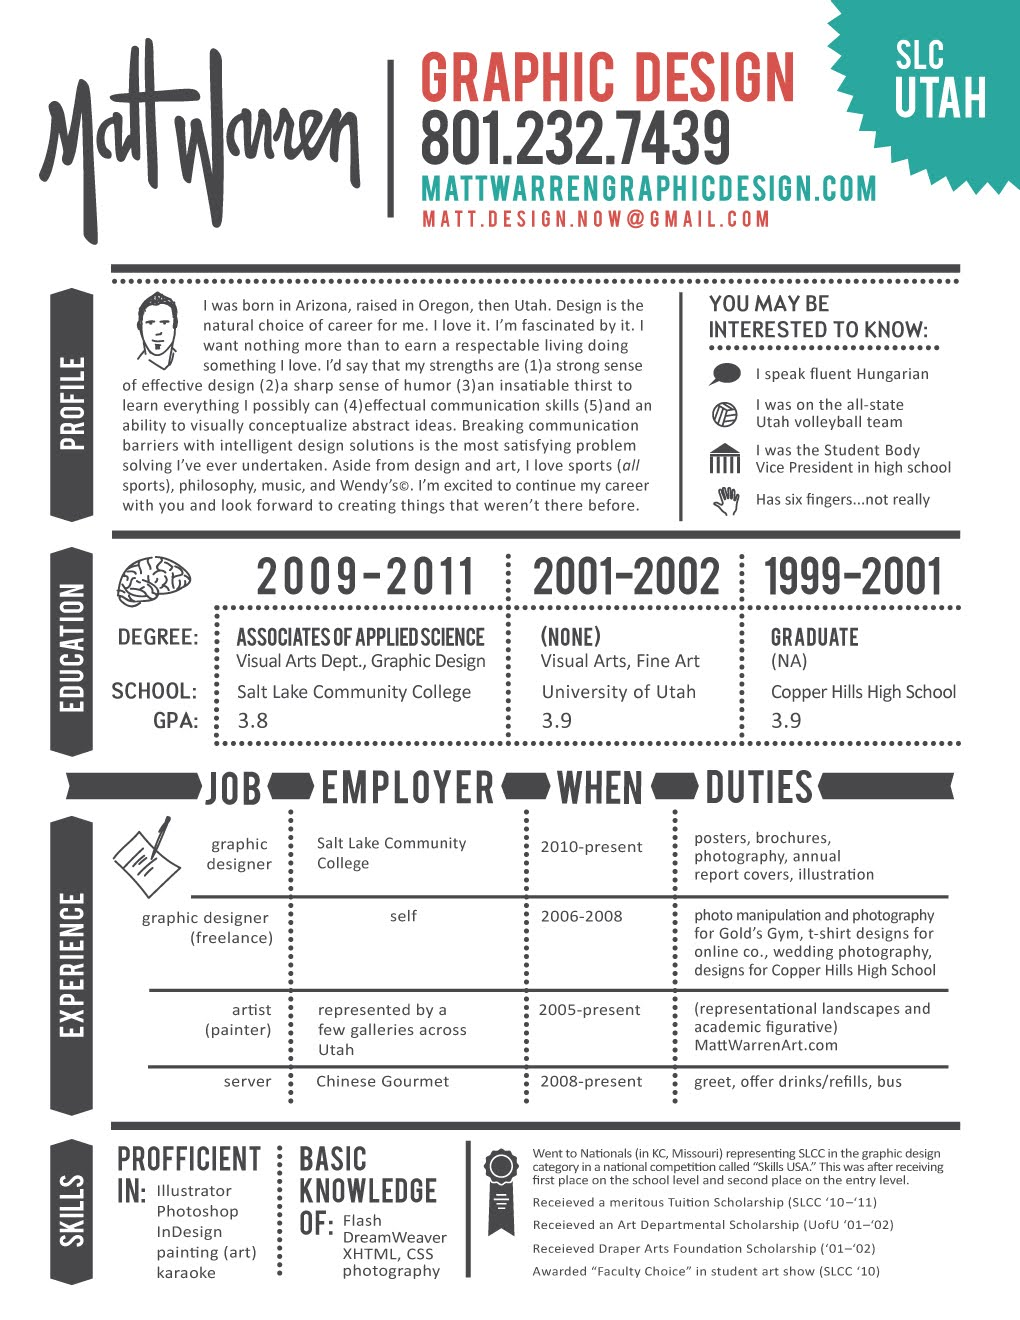 Opposenewapstandardsus  Nice  Images About Hire Me On Pinterest  Graphic Designer Resume  With Remarkable  Images About Hire Me On Pinterest  Graphic Designer Resume Resume Design And Resume With Attractive Free Resume Printable Also General Resume Sample In Addition Resume For Respiratory Therapist And Financial Services Resume As Well As Outline Of Resume Additionally Resume Objective Or Summary From Pinterestcom With Opposenewapstandardsus  Remarkable  Images About Hire Me On Pinterest  Graphic Designer Resume  With Attractive  Images About Hire Me On Pinterest  Graphic Designer Resume Resume Design And Resume And Nice Free Resume Printable Also General Resume Sample In Addition Resume For Respiratory Therapist From Pinterestcom